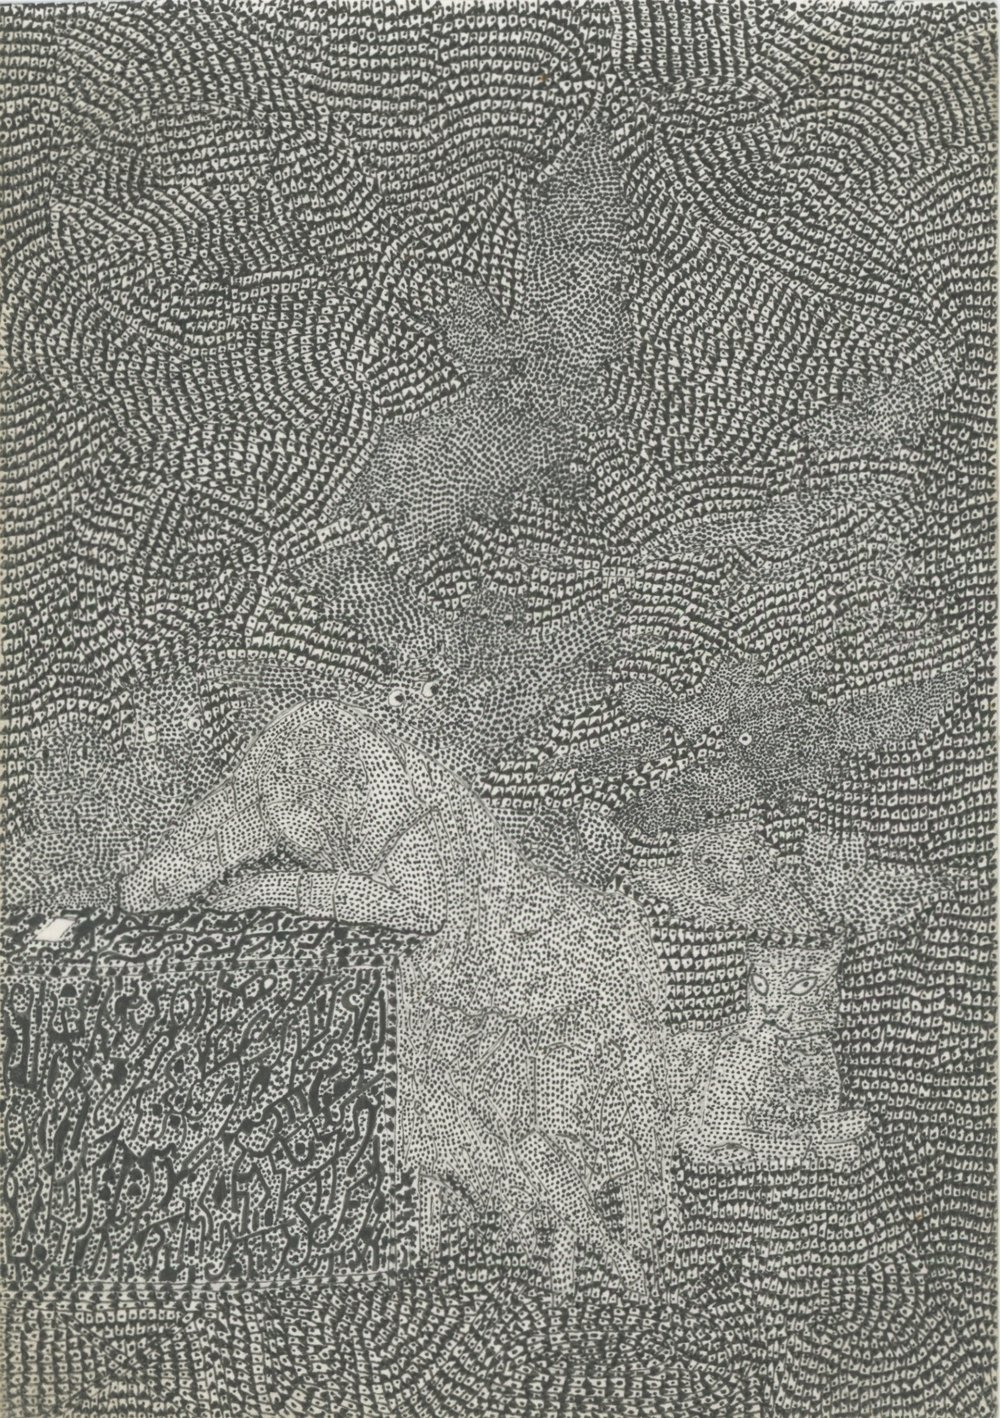 Franklin Goya's Nightmare, 2006 Ink on paper 5.71 x 4.02 inches 14.5 x 10.2 cm Fra 6